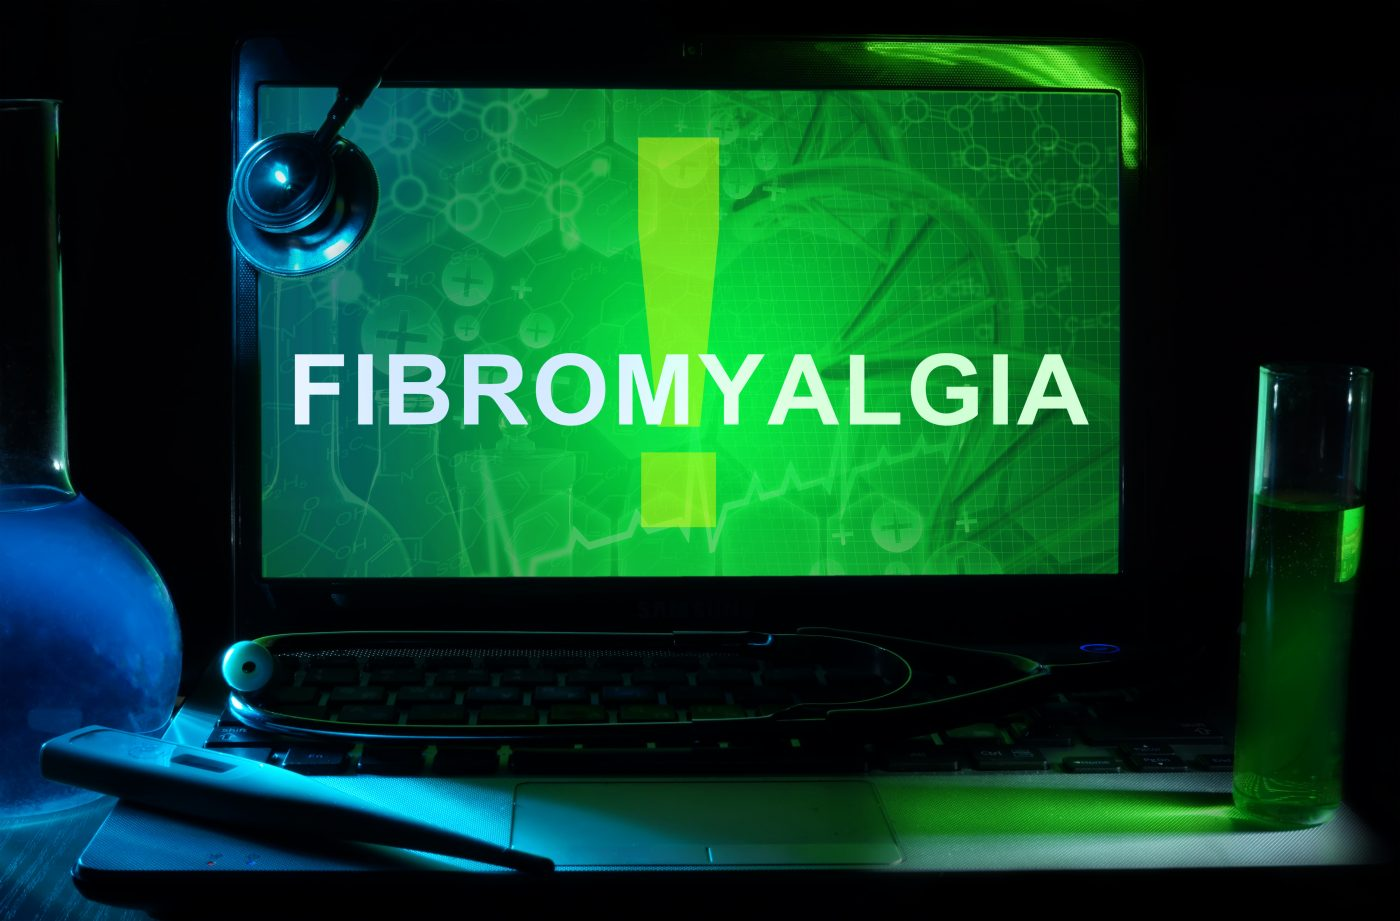 Researchers Suggest Additional Testing of Antidepressant Venlafaxine as Potential Treatment for Fibromyalgia